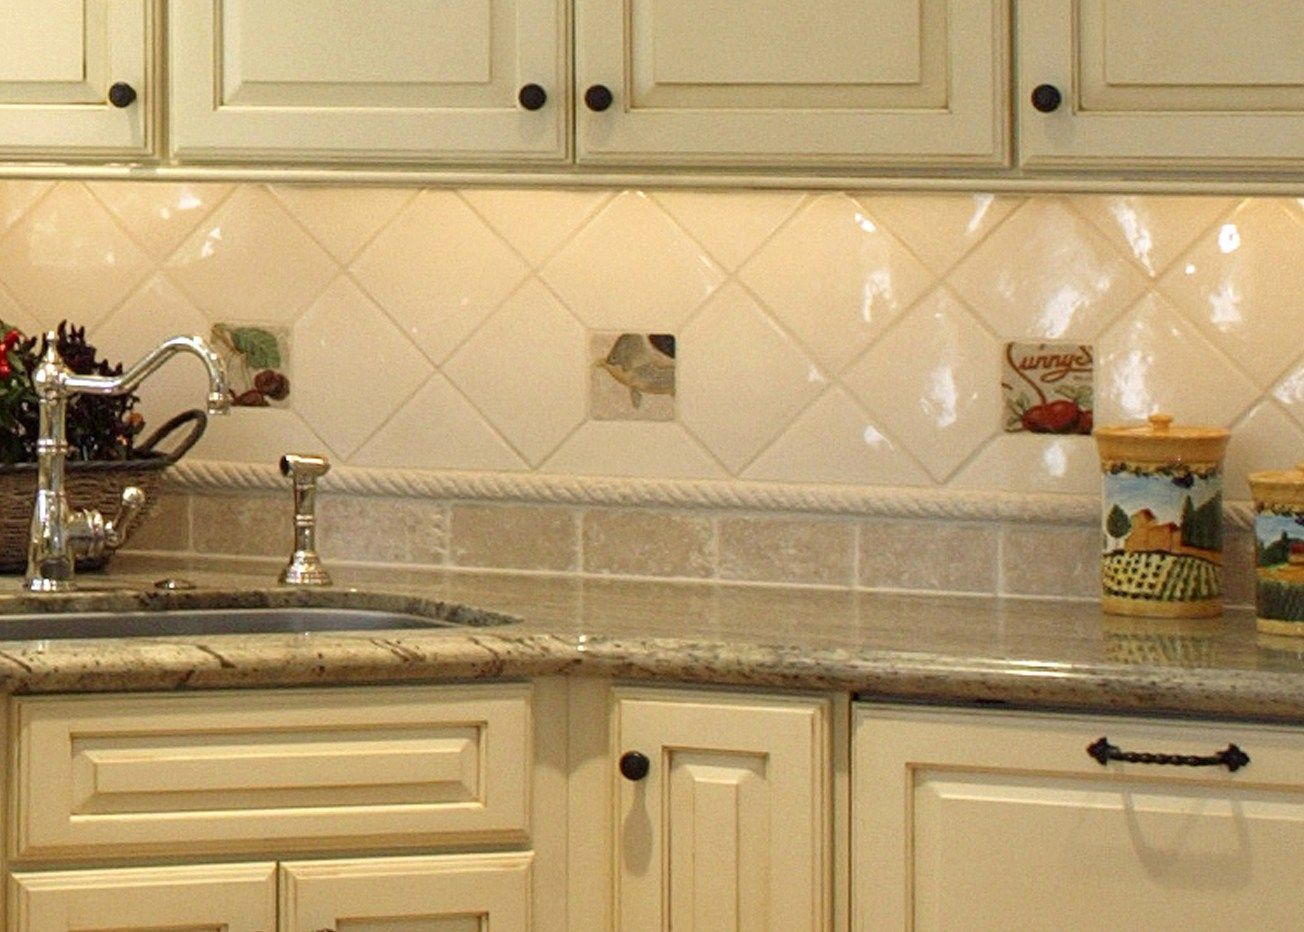 Tile Lovely Kitchen Design Ideas White Kitchen Cabinet Wonderful Kitchen Ti Kitchen Backsplash Tile Designs Kitchen Backsplash Designs Kitchen Tiles Backsplash